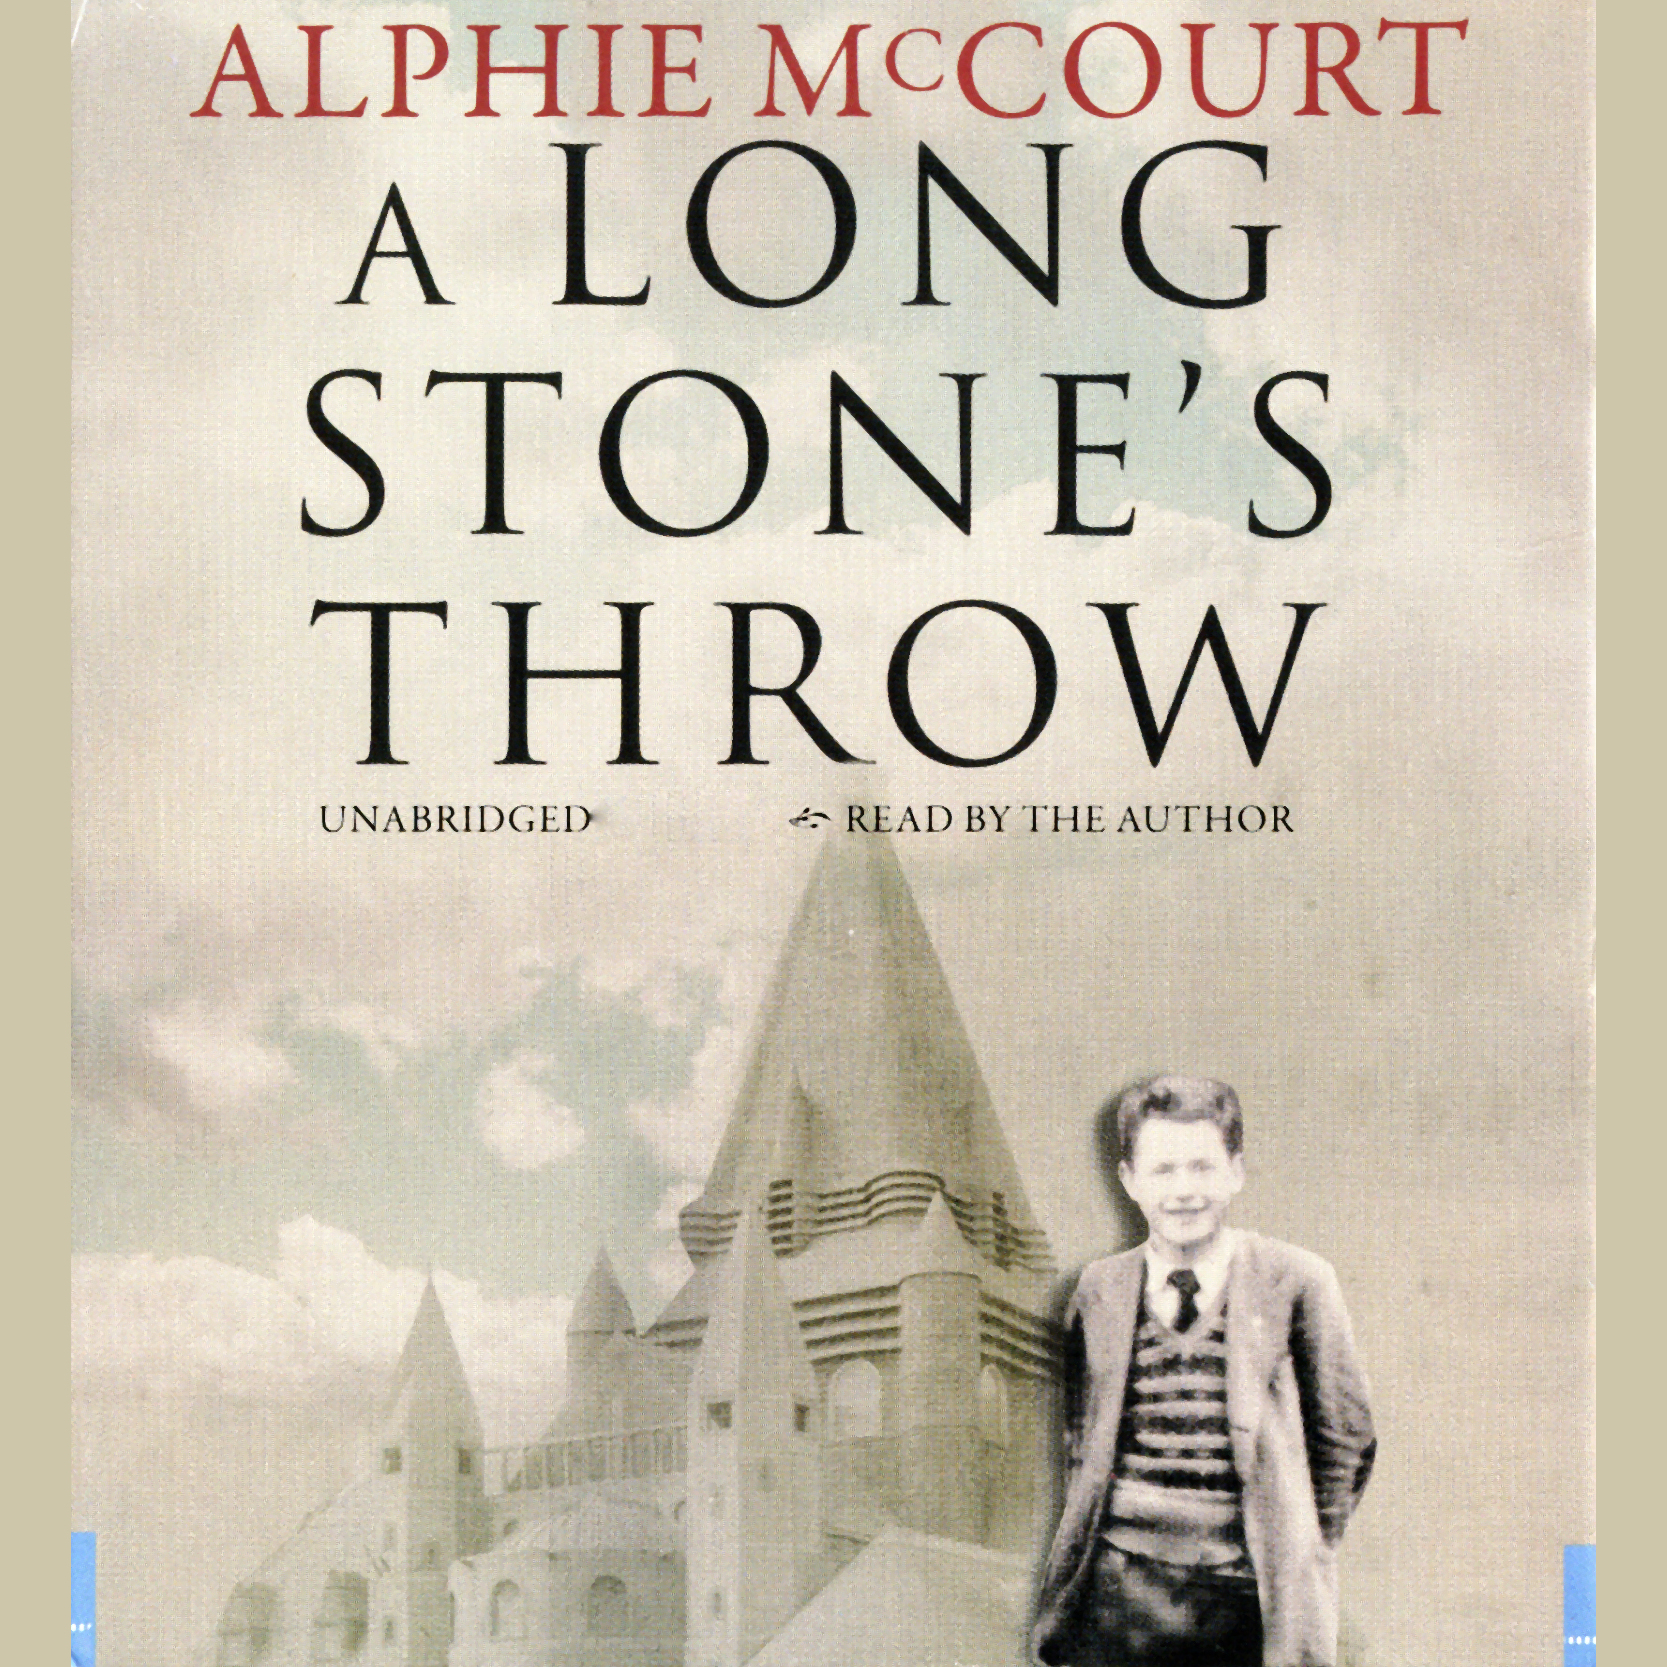 Printable A Long Stone's Throw Audiobook Cover Art